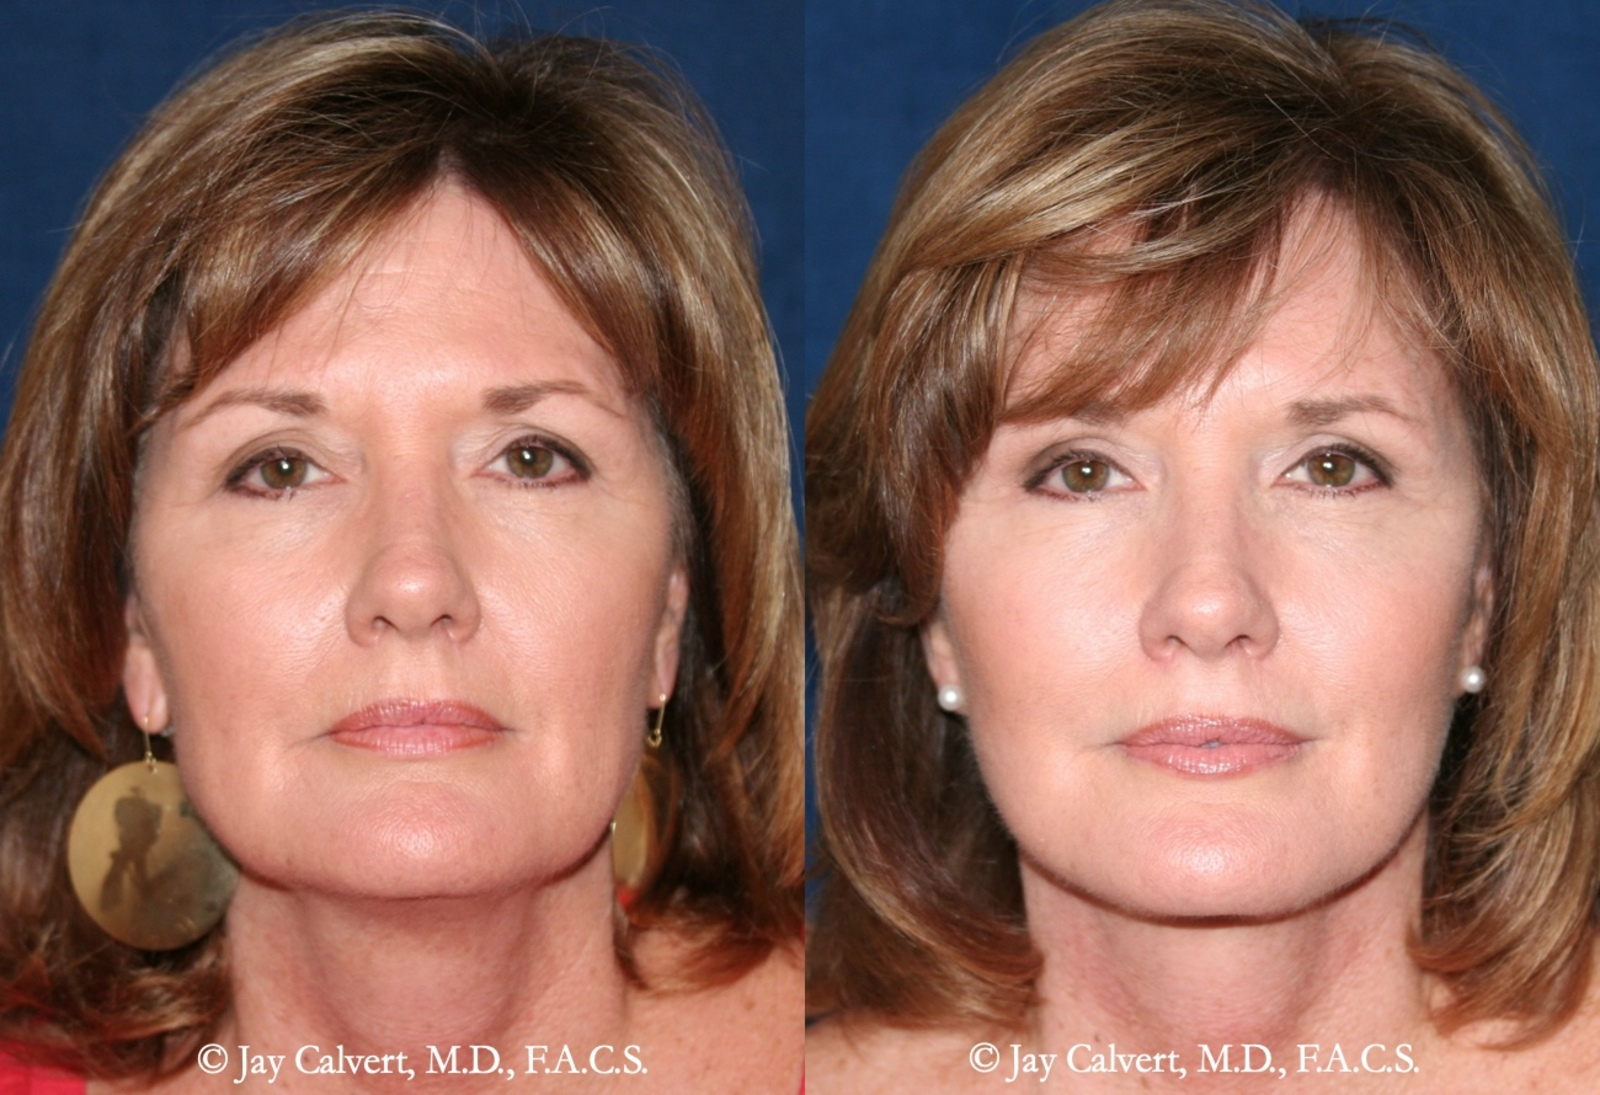 Dr. Jay Calvert, Beverly Hills Plastic Surgeon, Comments on Baby Boomers Rising Facelift Trend